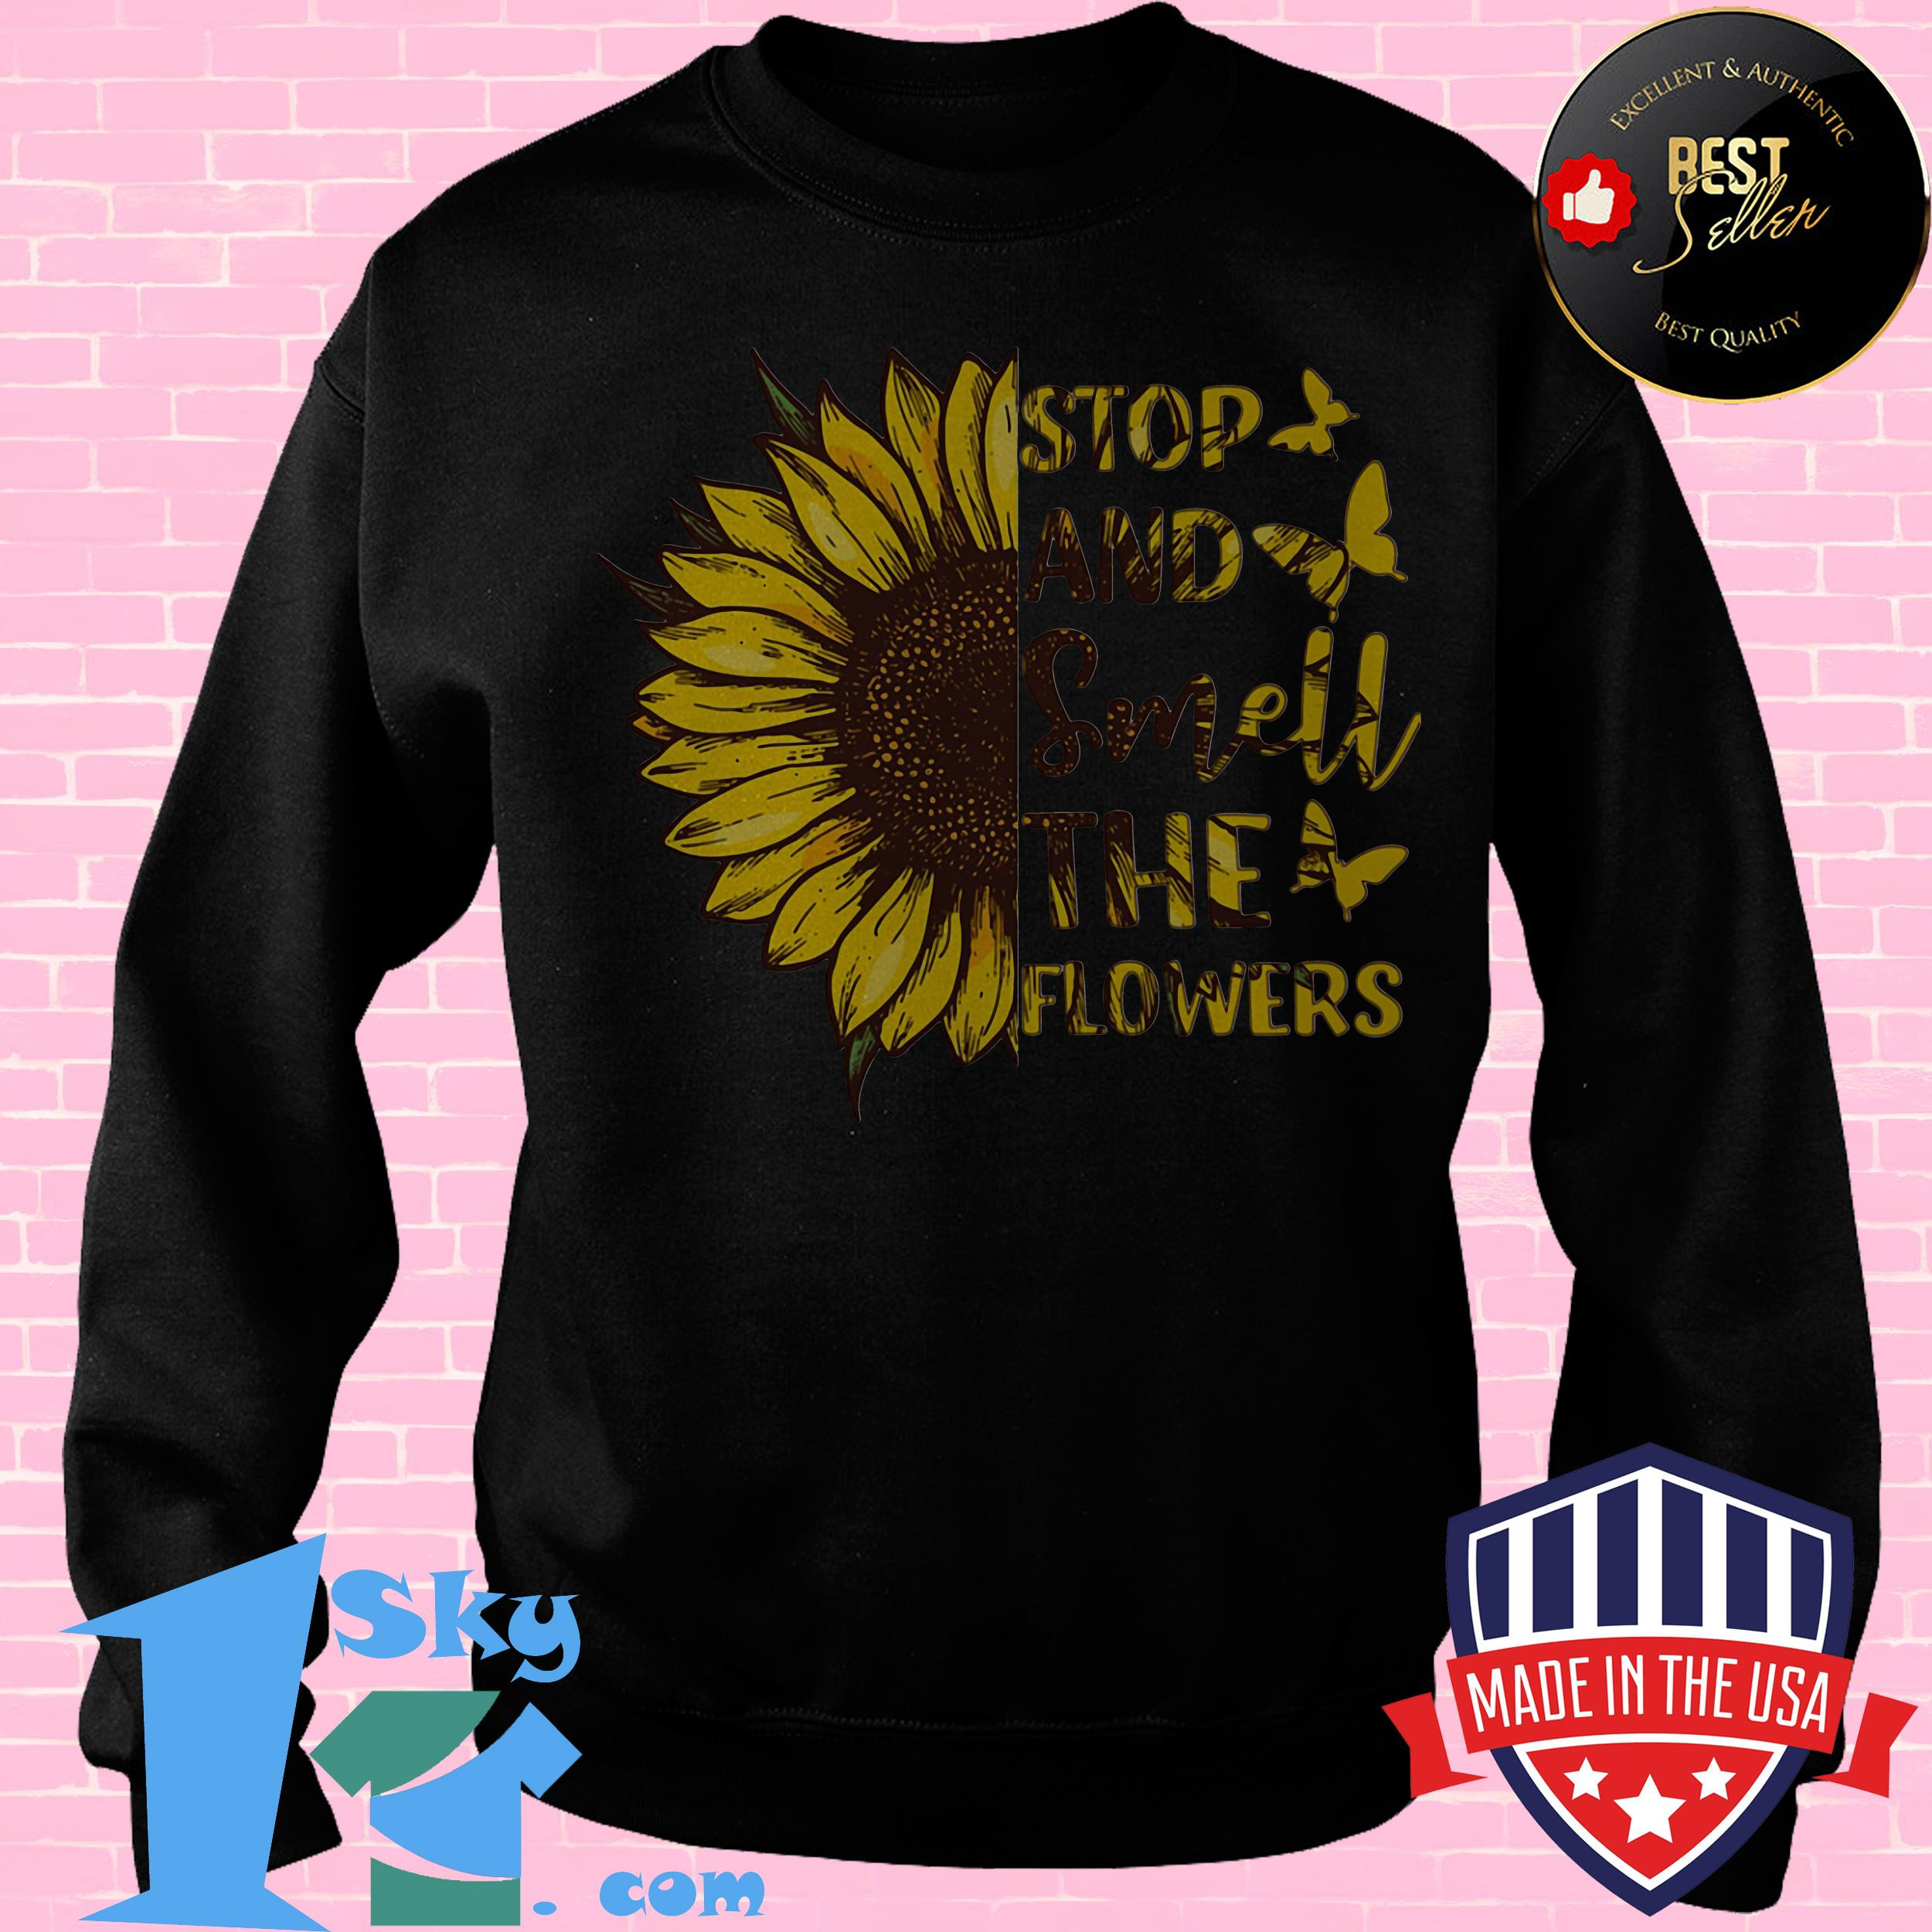 butterfly and sunflower stop and smell the flowers sweatshirt - Butterfly and Sunflower Stop And Smell The Flowers shirt